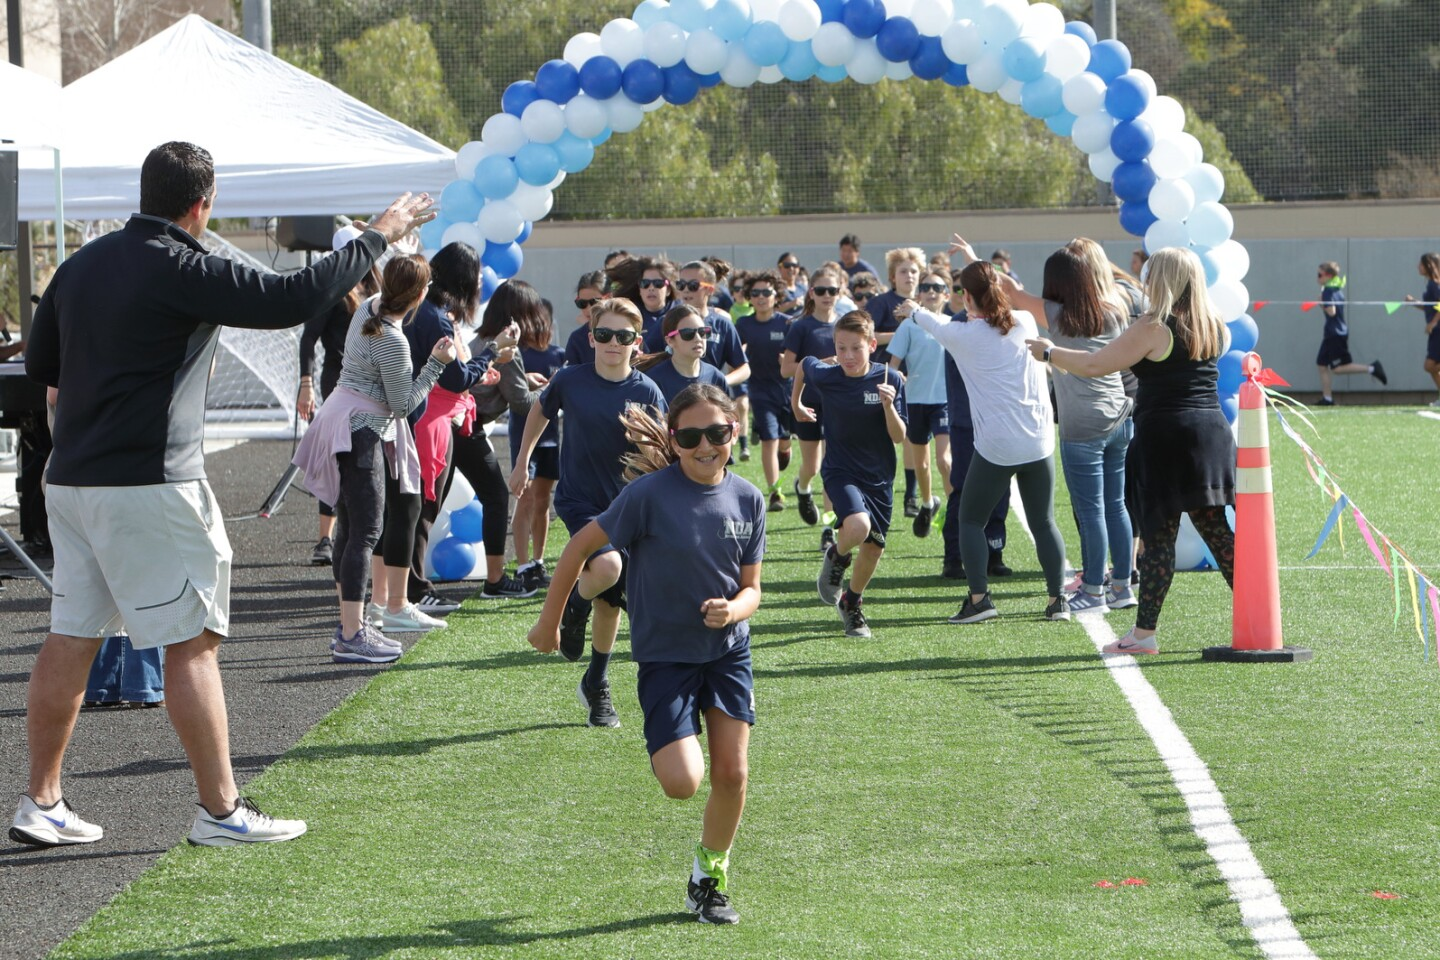 Notre Dame Academy 5th and 6th grade students participate in the Jog-A-Thon